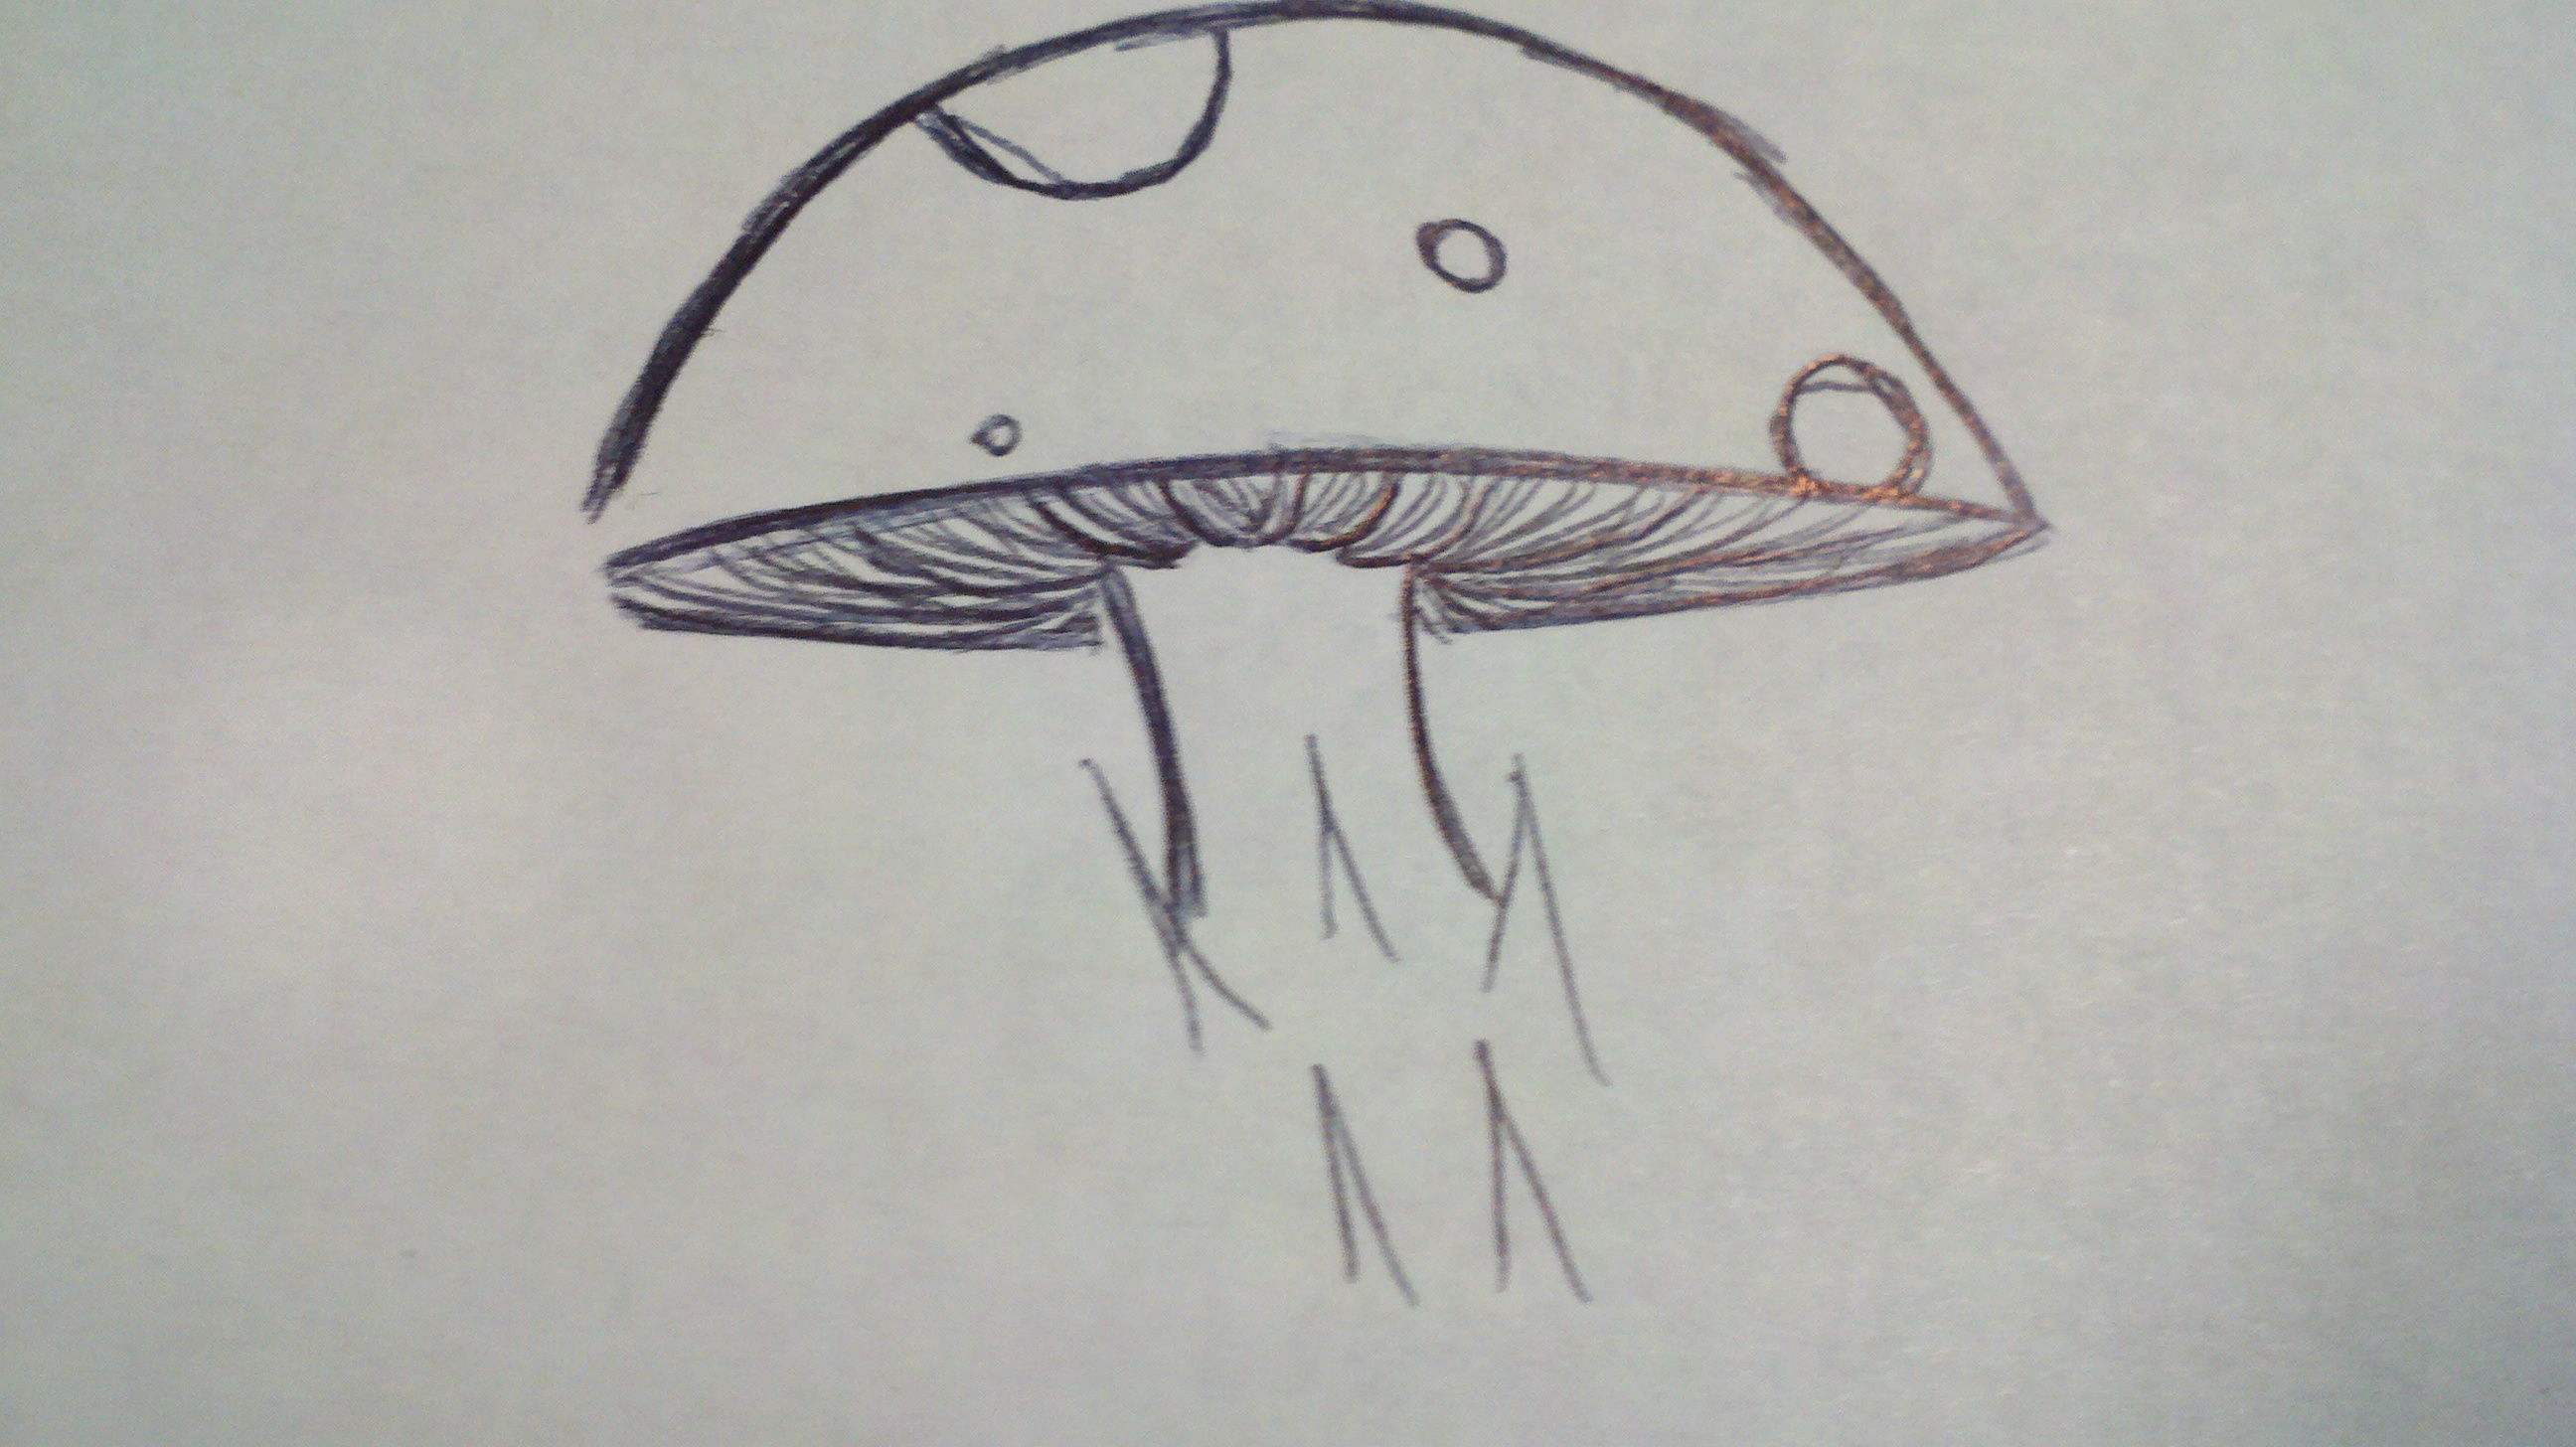 Small Drawings: How To Draw A Mushroom